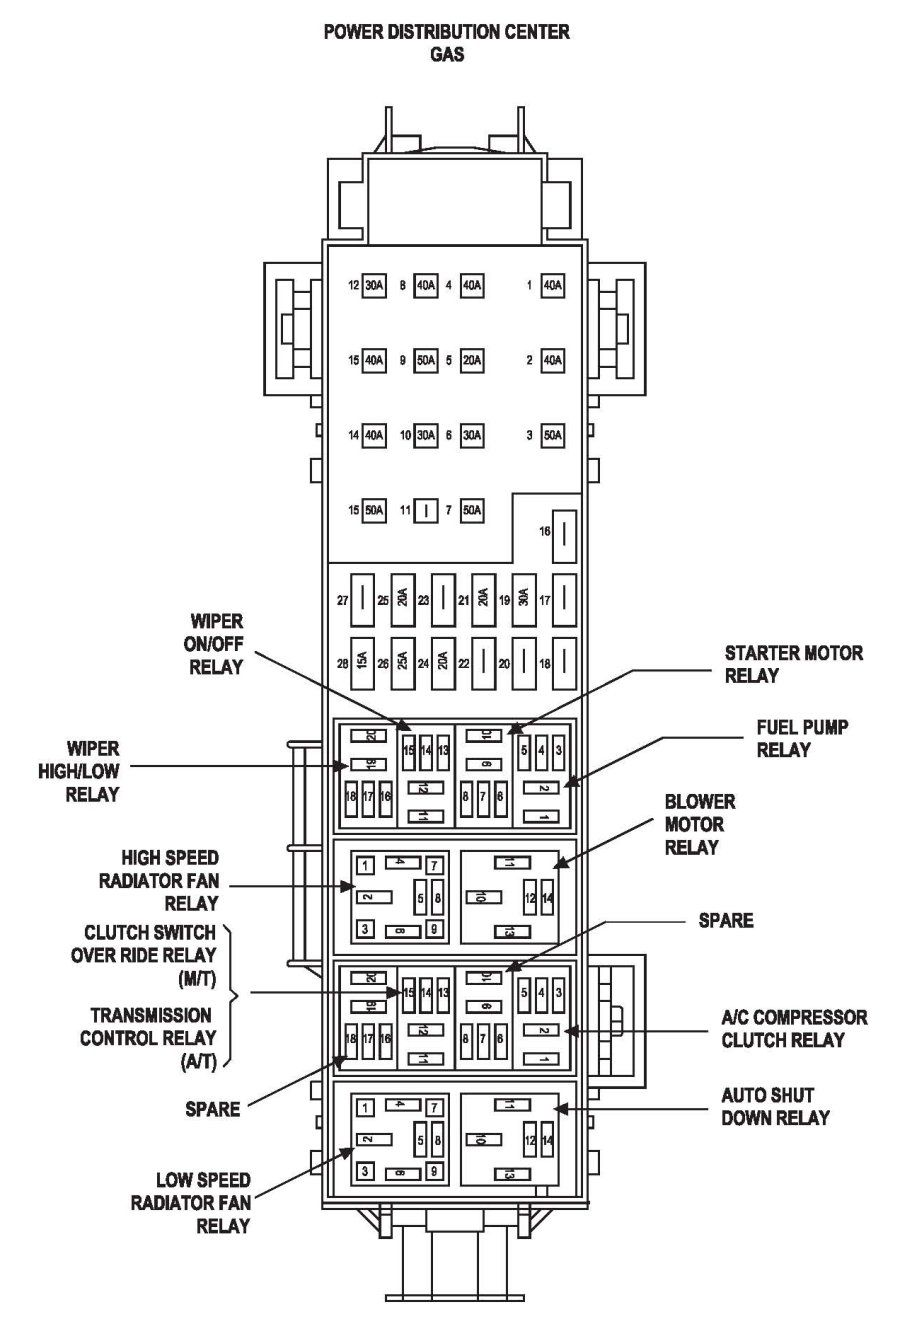 b3536c3739783eb19f827744cc42c3c4 jeep liberty fuse box diagram image details jeep liberty jeep liberty fuse box location at bakdesigns.co